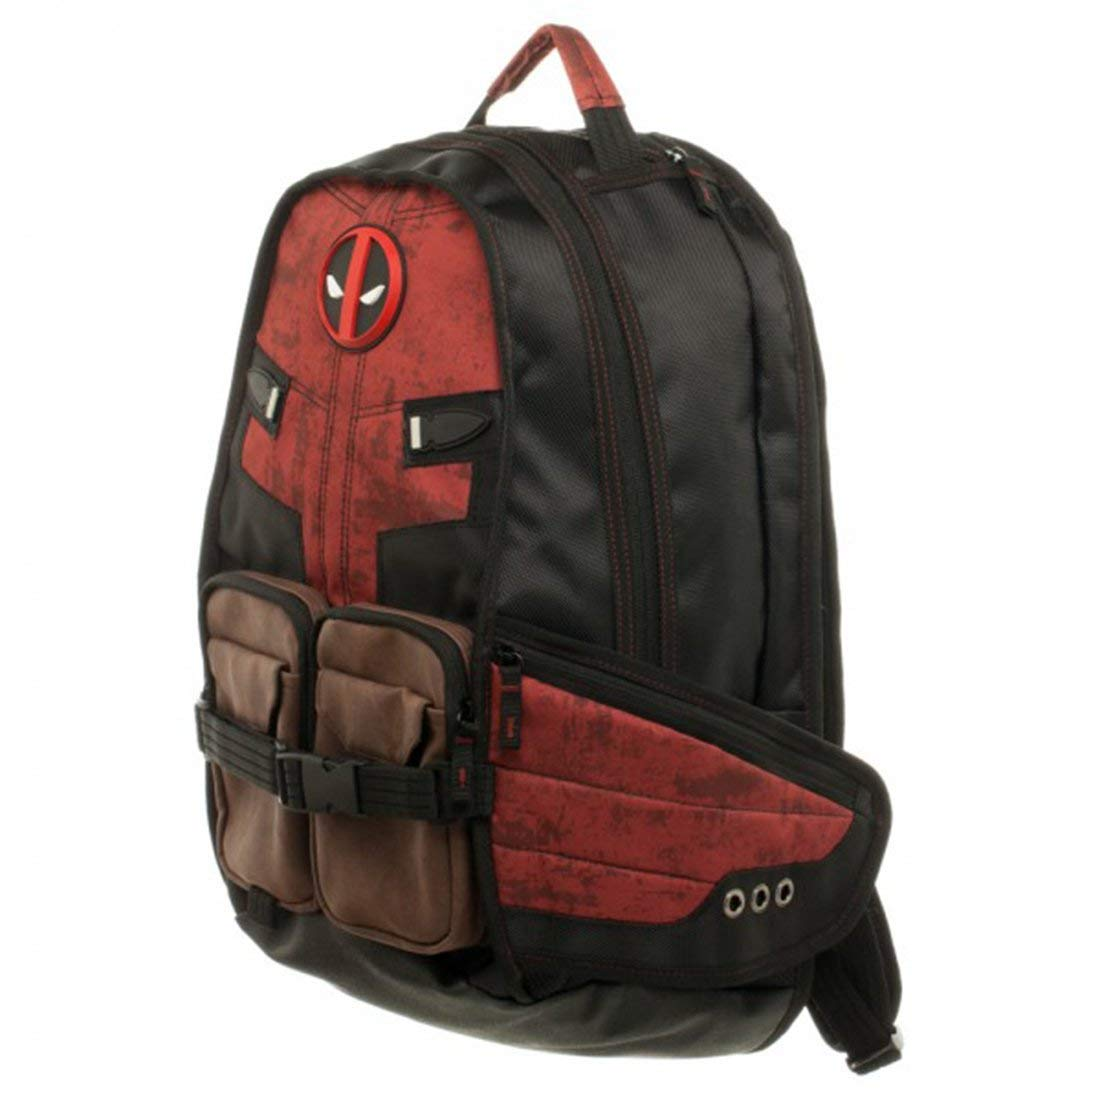 Bioworld Marvel Deadpool Laptop Backpack - Buy Bioworld Marvel Deadpool  Laptop Backpack Online at Low Price in India - Amazon.in 0fe100686e109